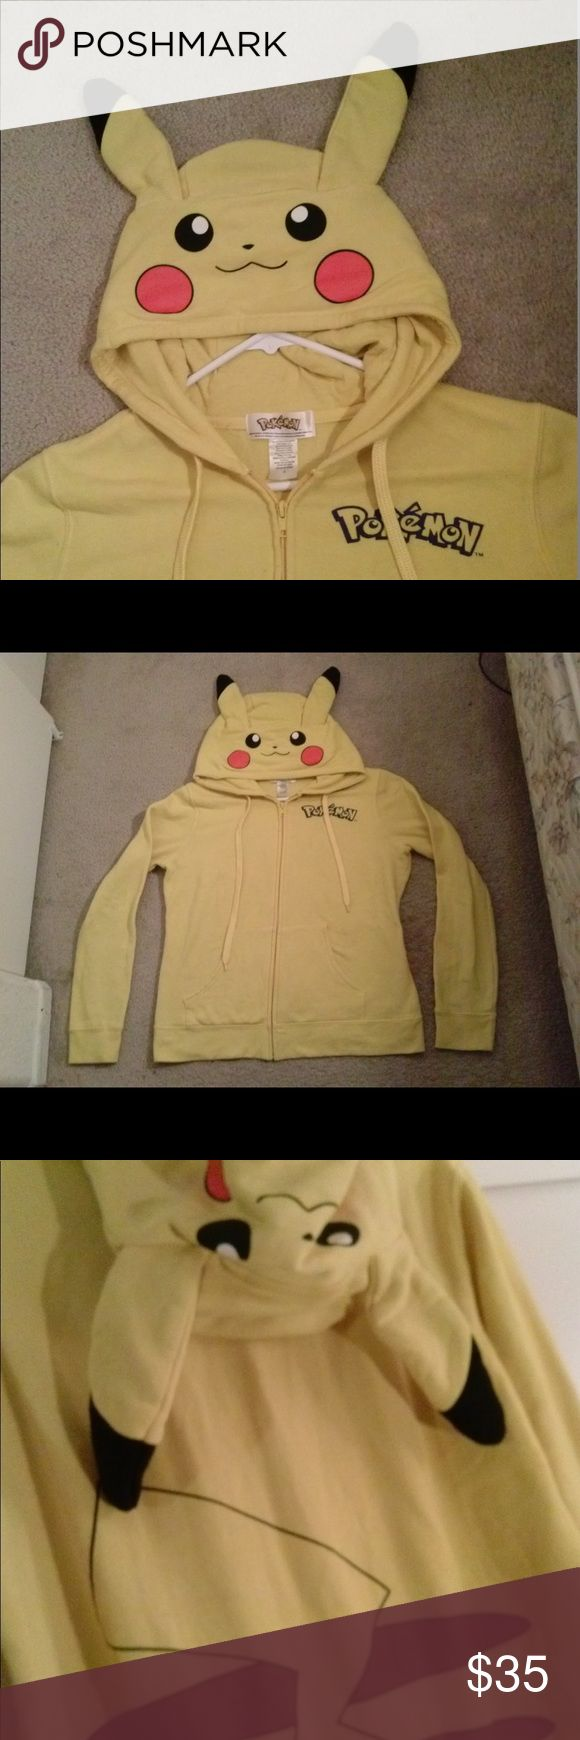 1 Pokémon Pikachu Hoodie Sweatshirt Great condition. No flaws. Free shipping   Size.        M  Length 28 inches Pit.to.pit  17 inches Inseam. 19.5 inches Pokemon Tops Sweatshirts & Hoodies